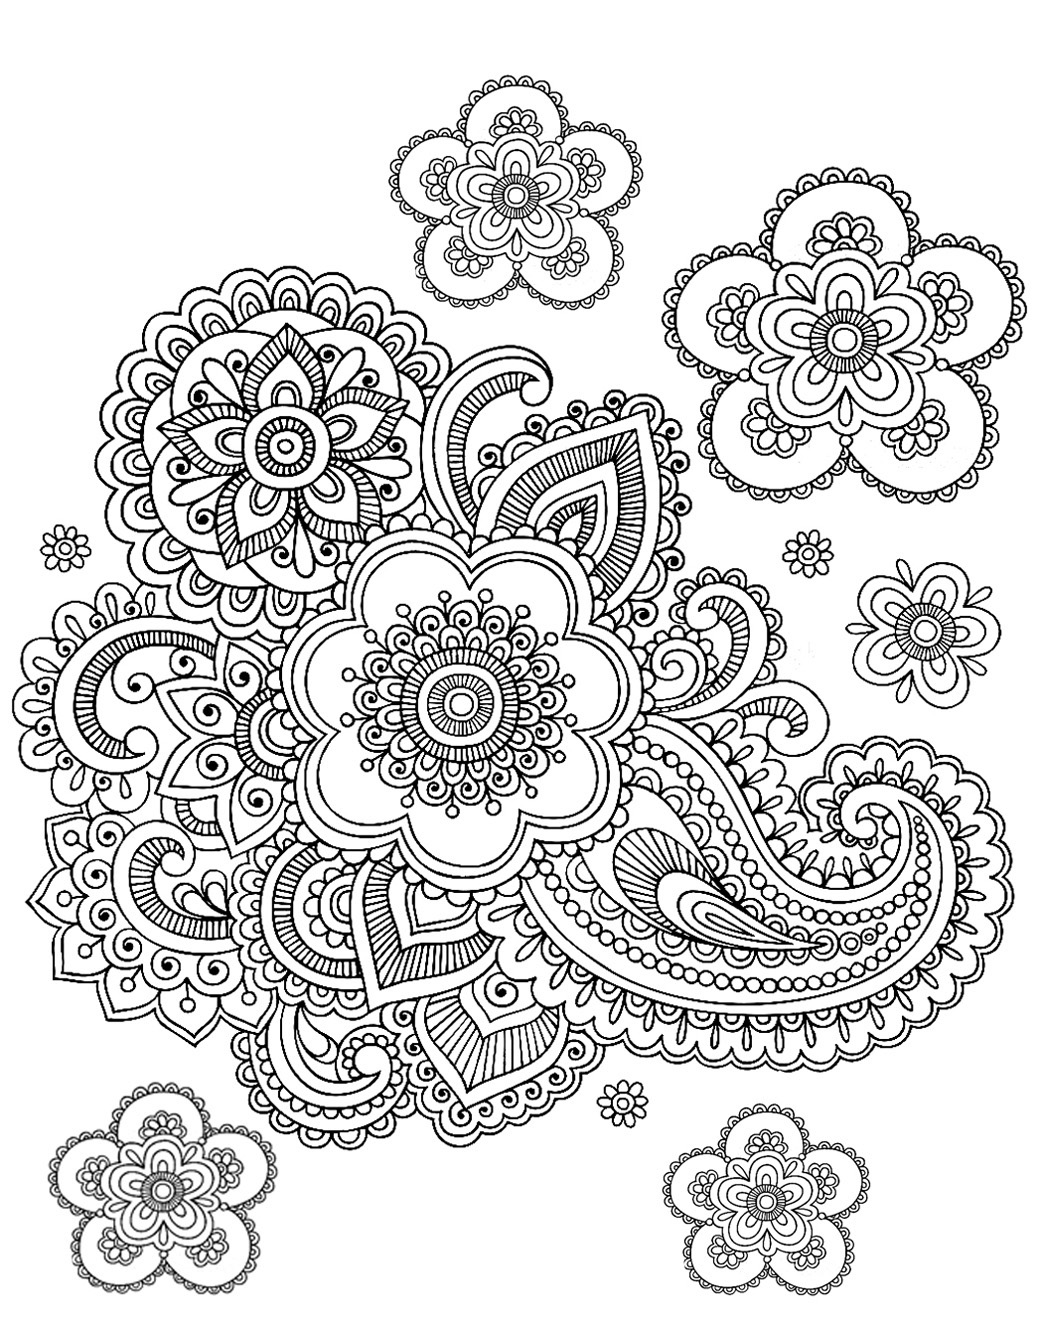 black and white coloring pages for adults cool coloring pages for adults peacock coloring home pages for adults and coloring white black